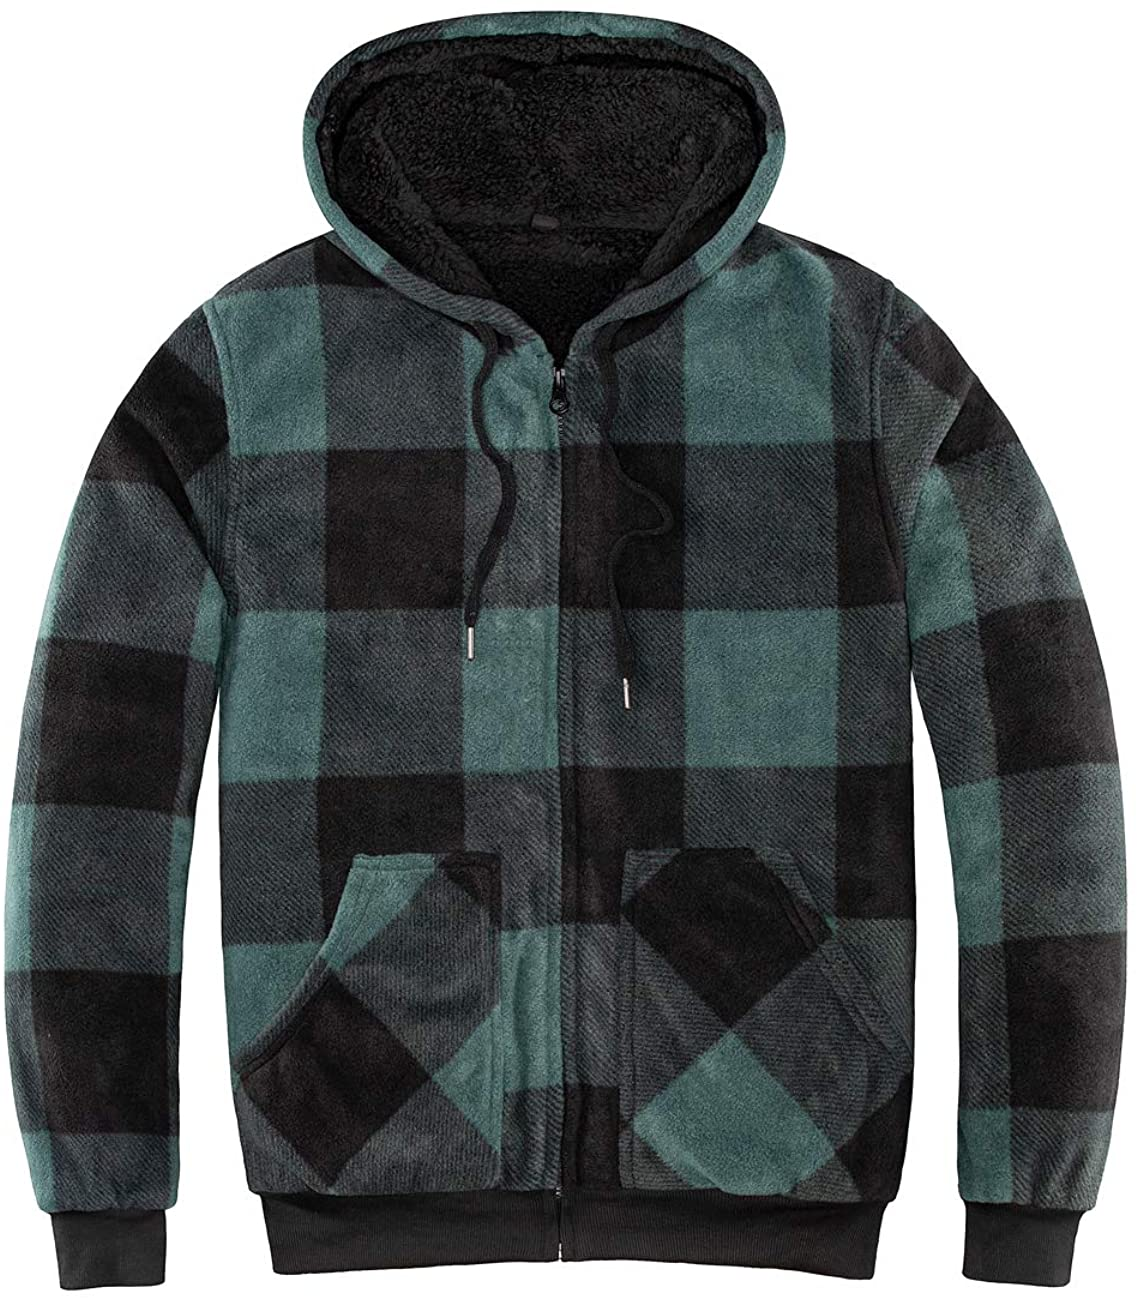 ZENTHACE Mens Thicken Sherpa Lined Checkered Flannel Hoodie Shirt Jacket